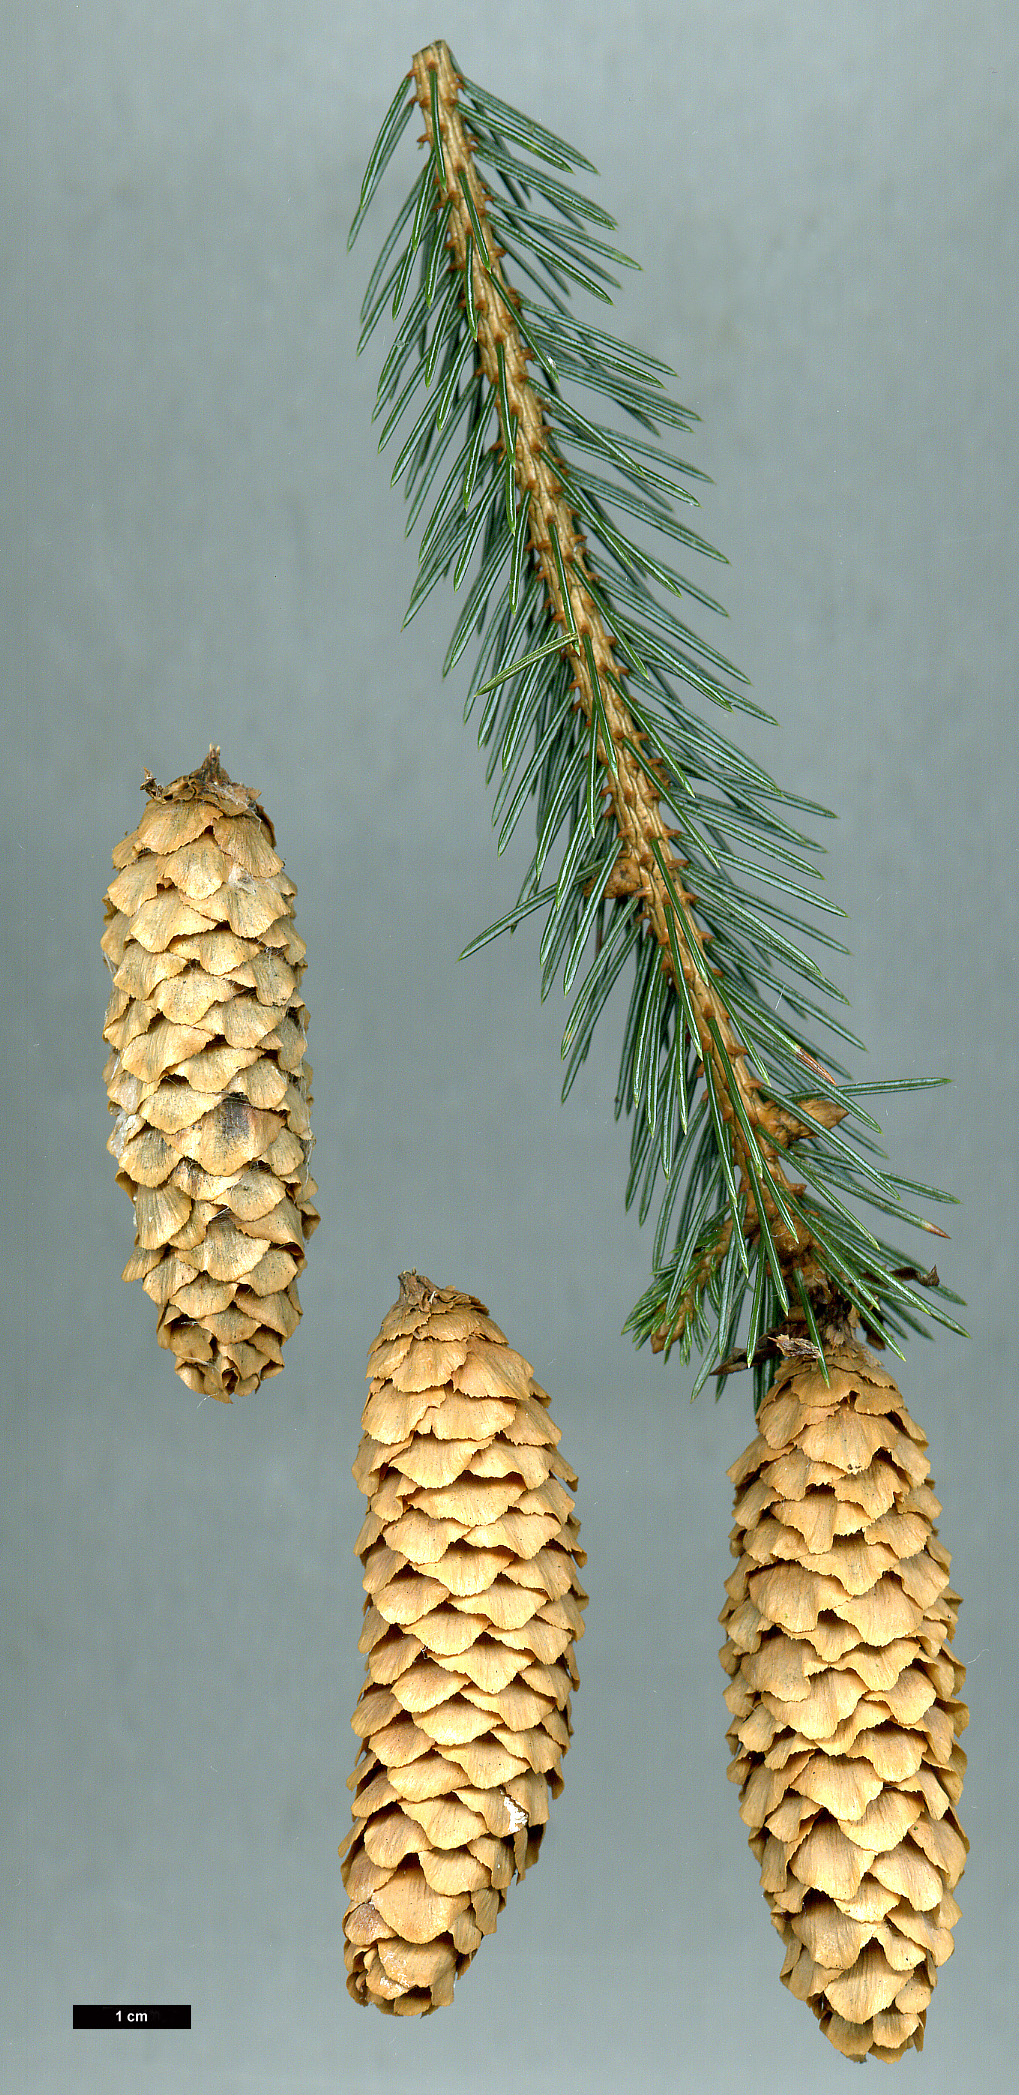 High resolution image: Family: Pinaceae - Genus: Picea - Taxon: engelmannii - SpeciesSub: subsp. mexicana